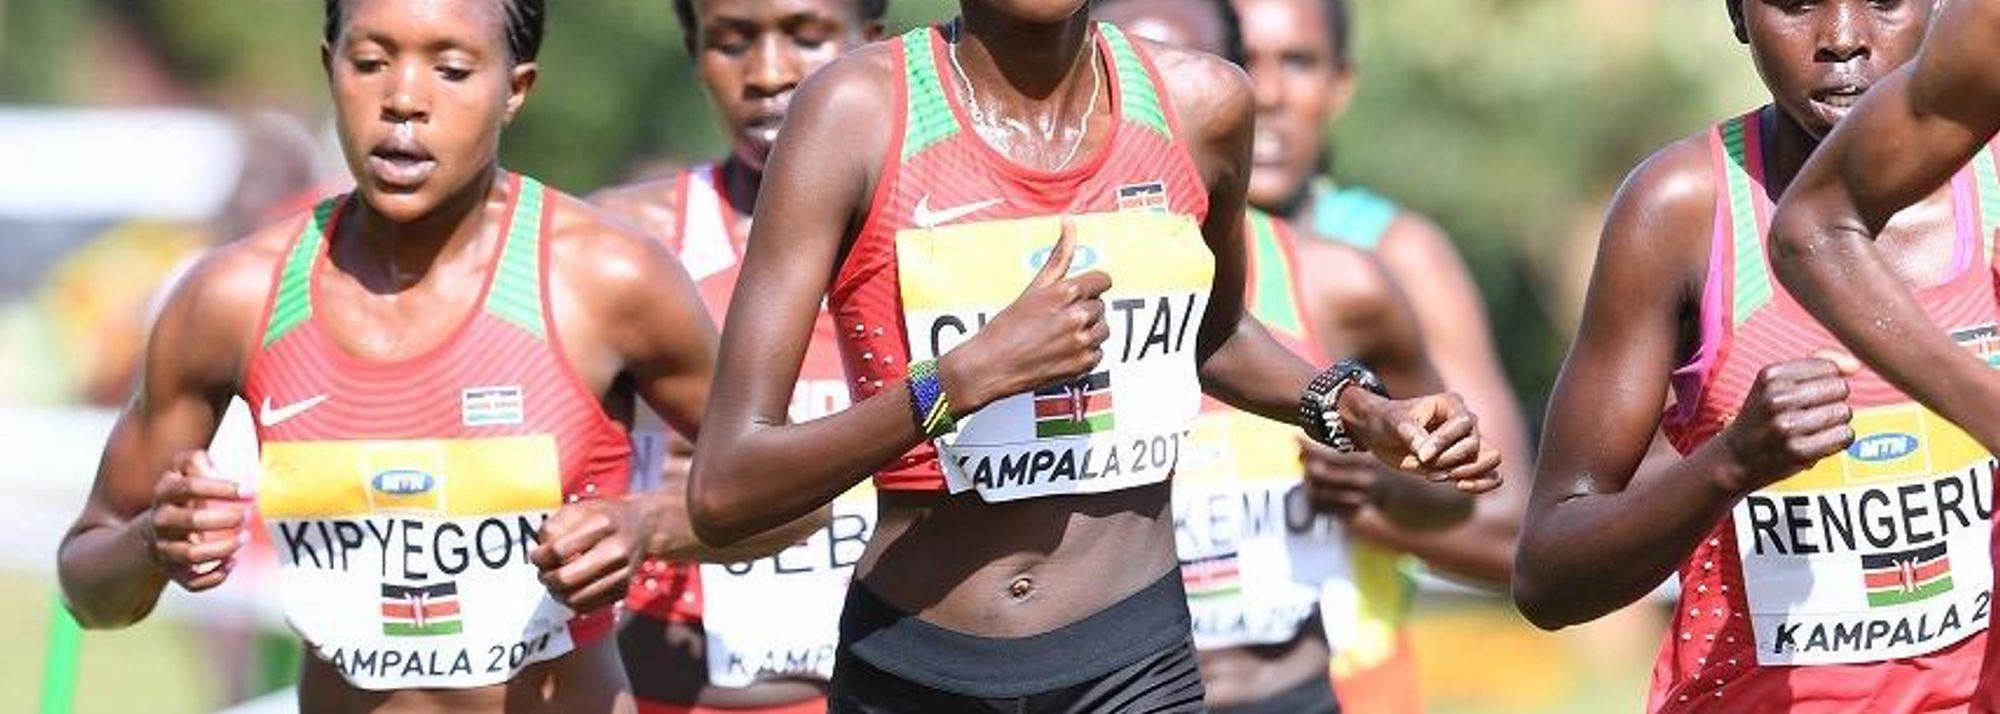 Arriving in the Ugandan capital with a team where world and Olympic medallists figured prominently, that Kenya would dominate the women's senior race at the IAAF World Cross Country Championships Kampala 2017 wasn't an especially major surprise.